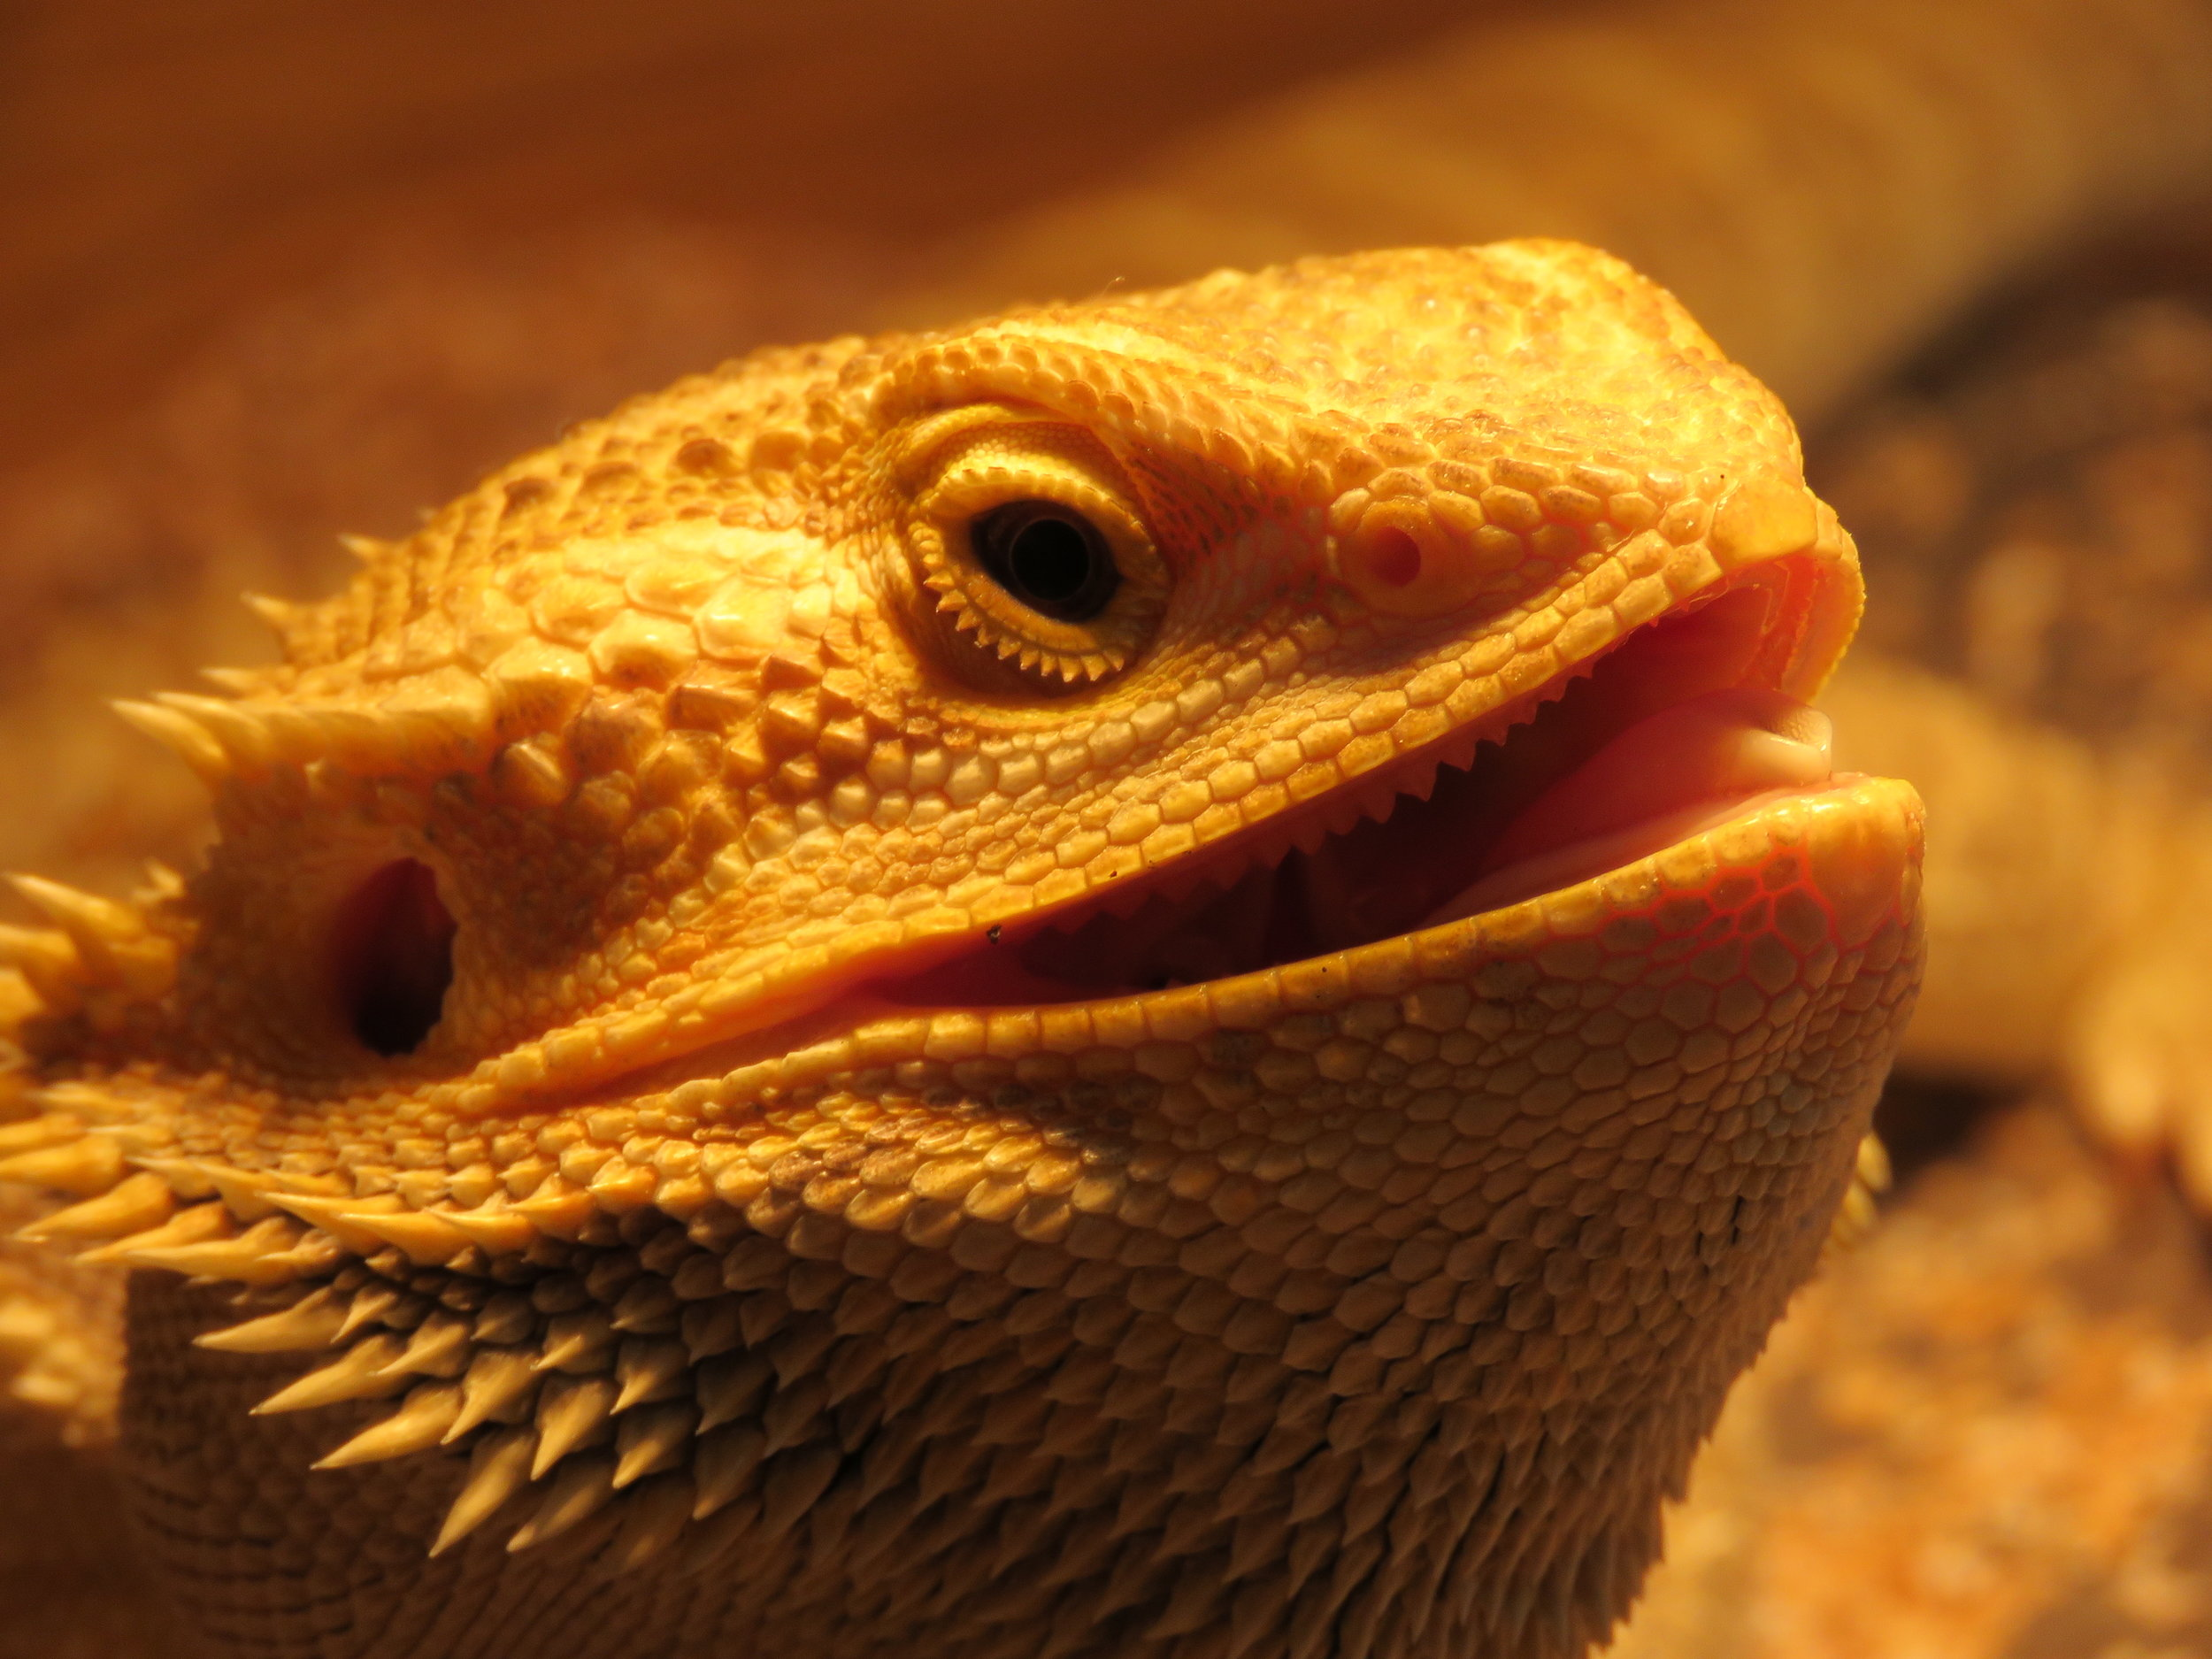 Mushu the Bearded Dragon | Photograph by Talita Bateman